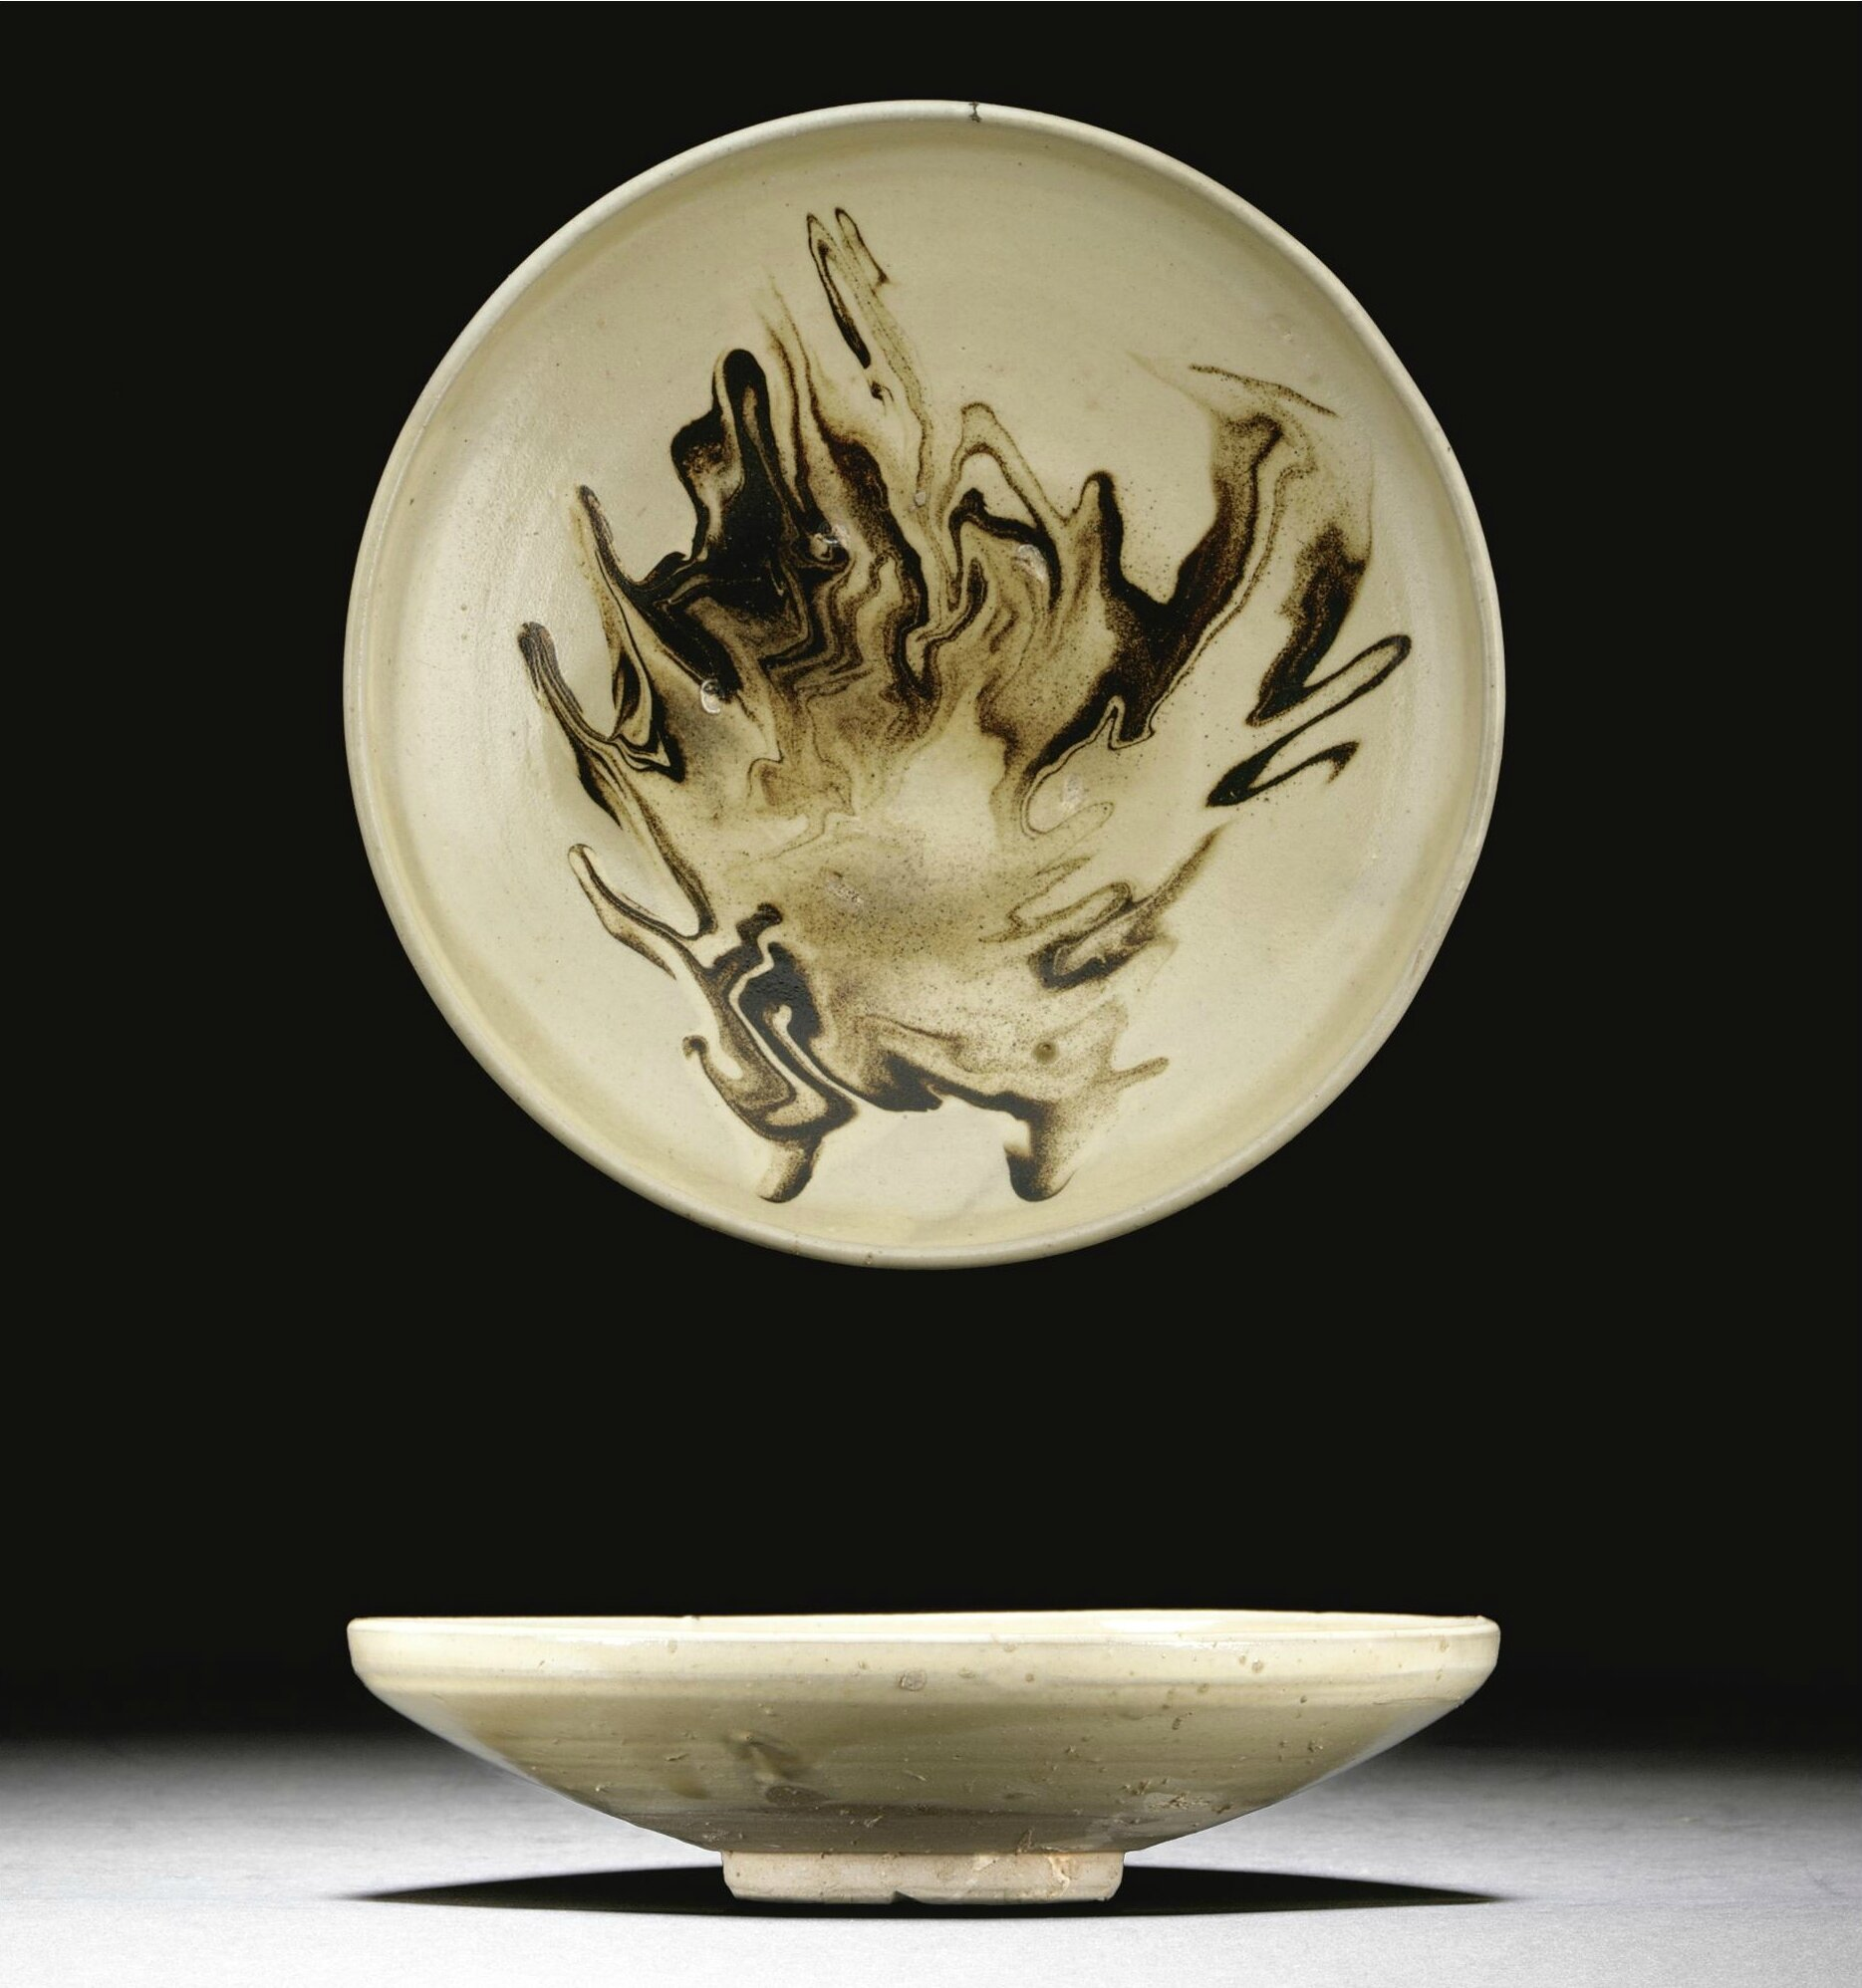 A rare marbled-glazed dish, Jin dynasty (1115-1234)